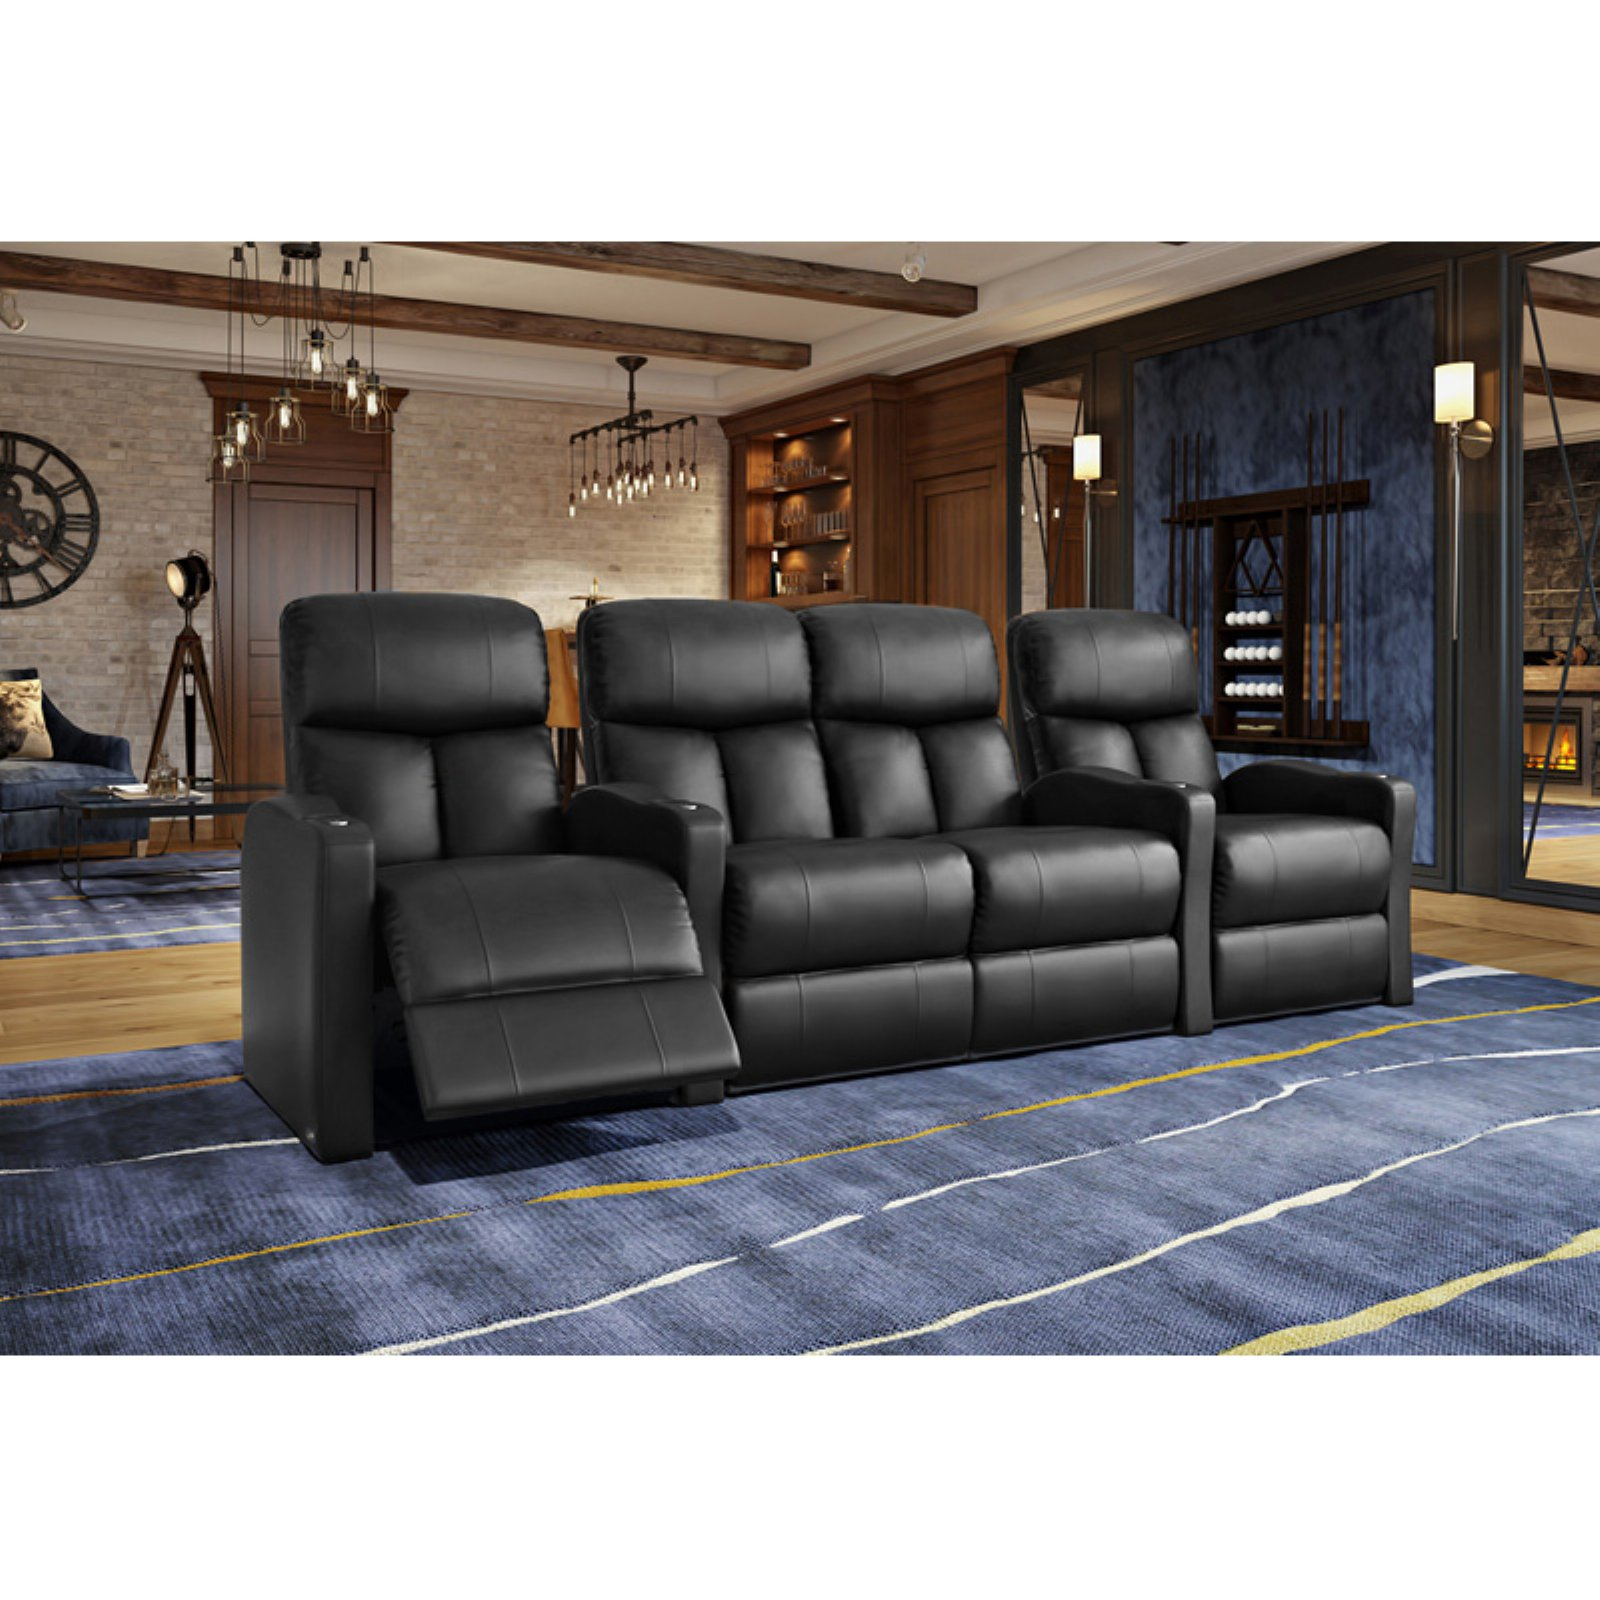 Octane Bolt XS400 4 Seater Middle Loveseat Power Recline Home Theater Seating